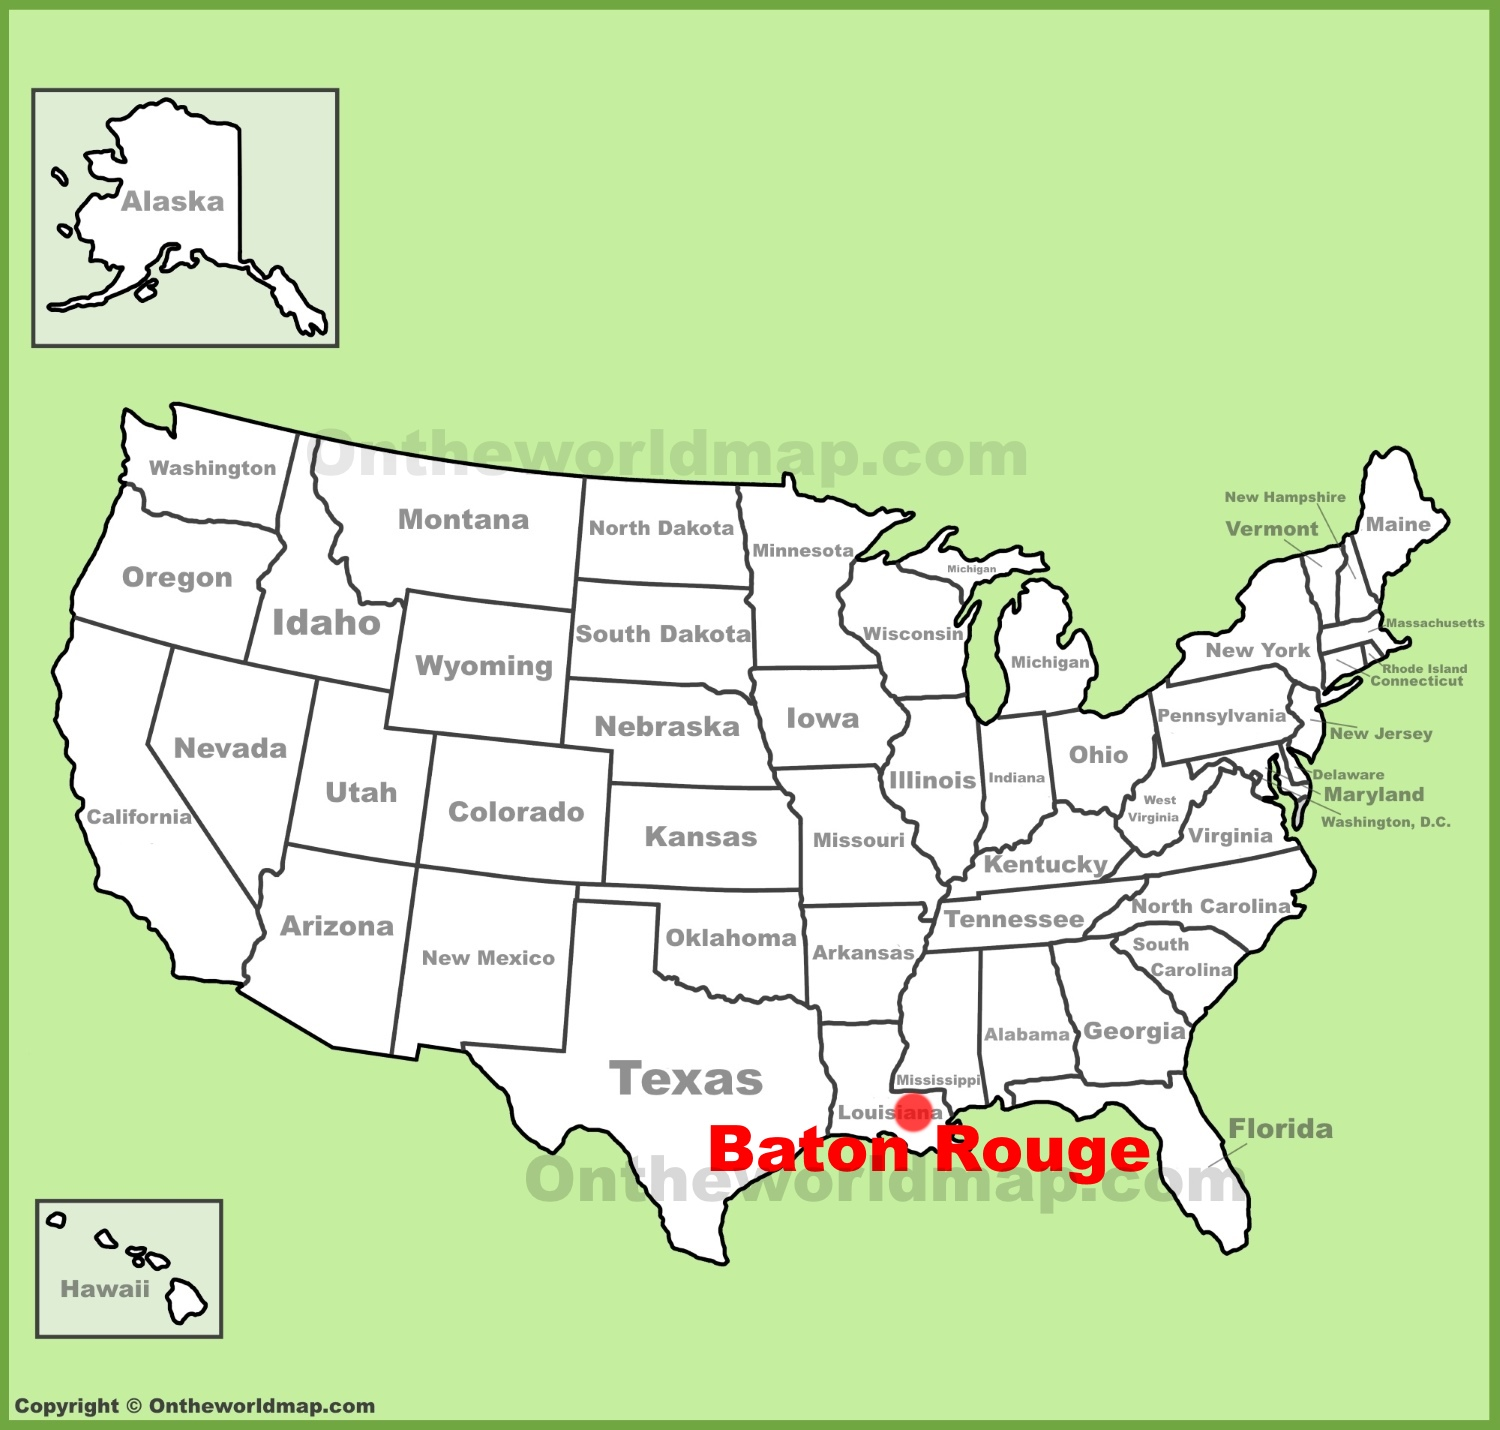 Baton Rouge Maps | Louisiana, U.S. | Maps of Baton Rouge